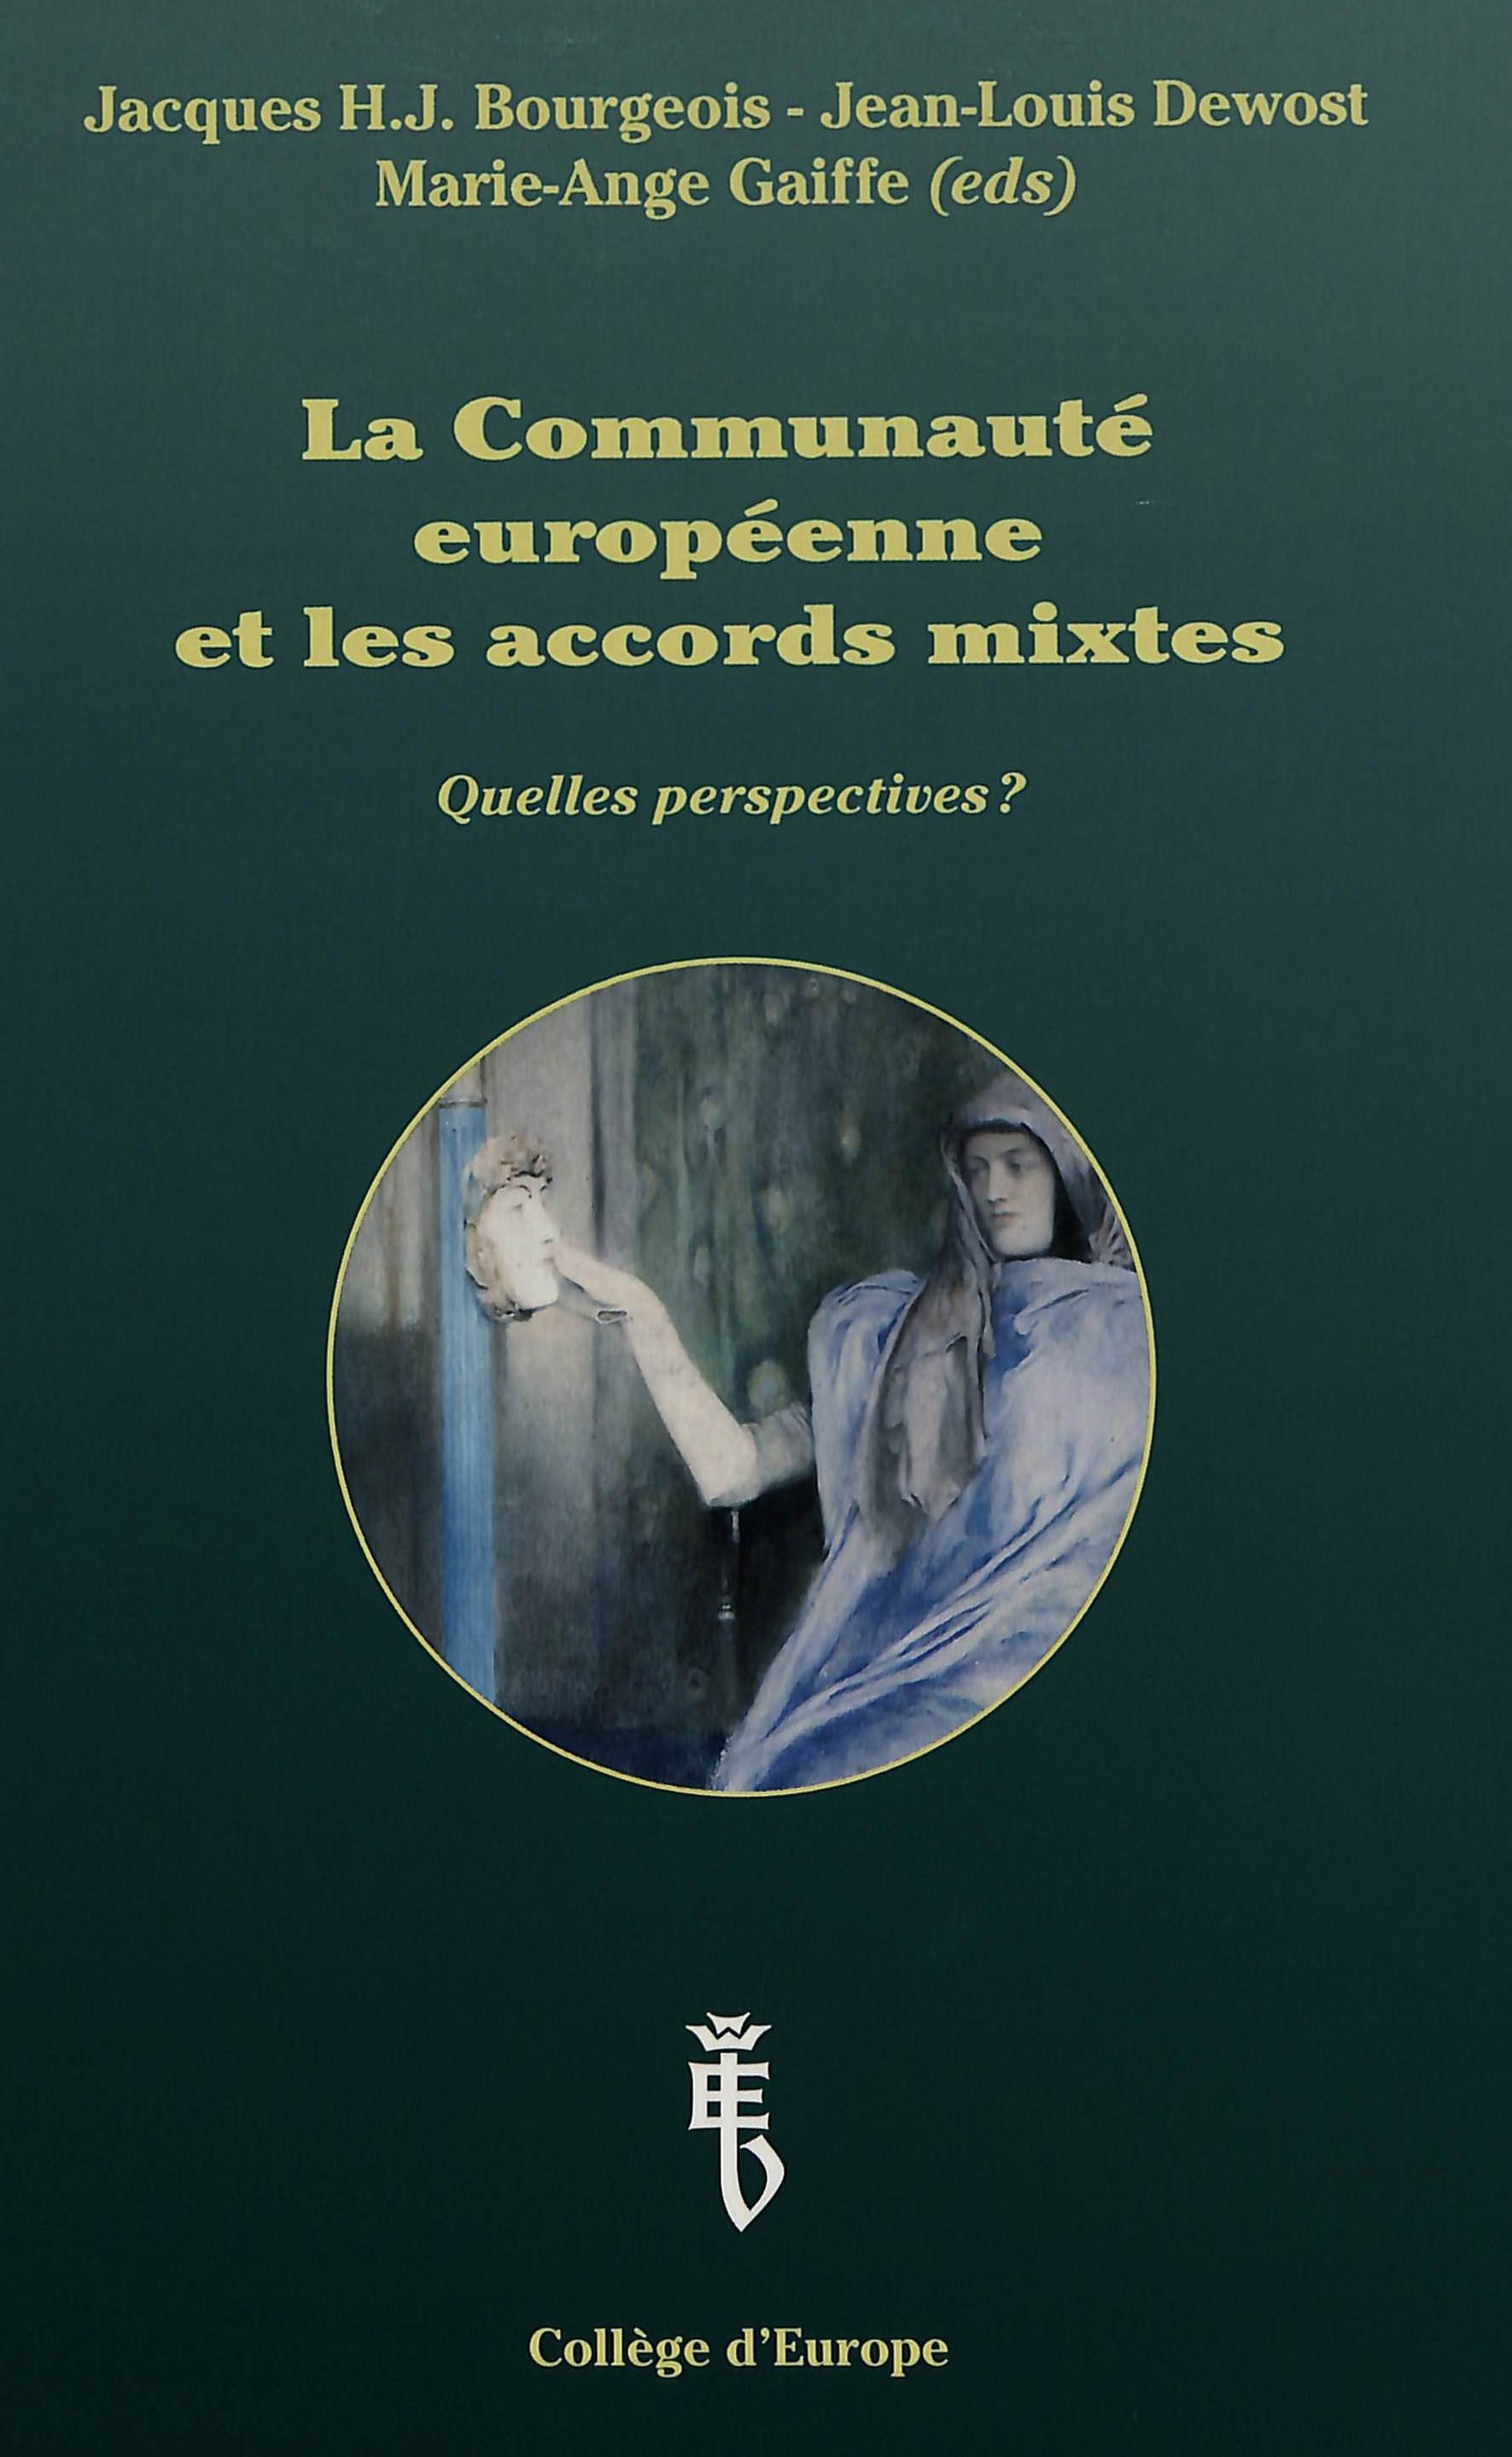 LA COMMUNAUTE EUROPEENNE ET LES ACCORDS MIXTES